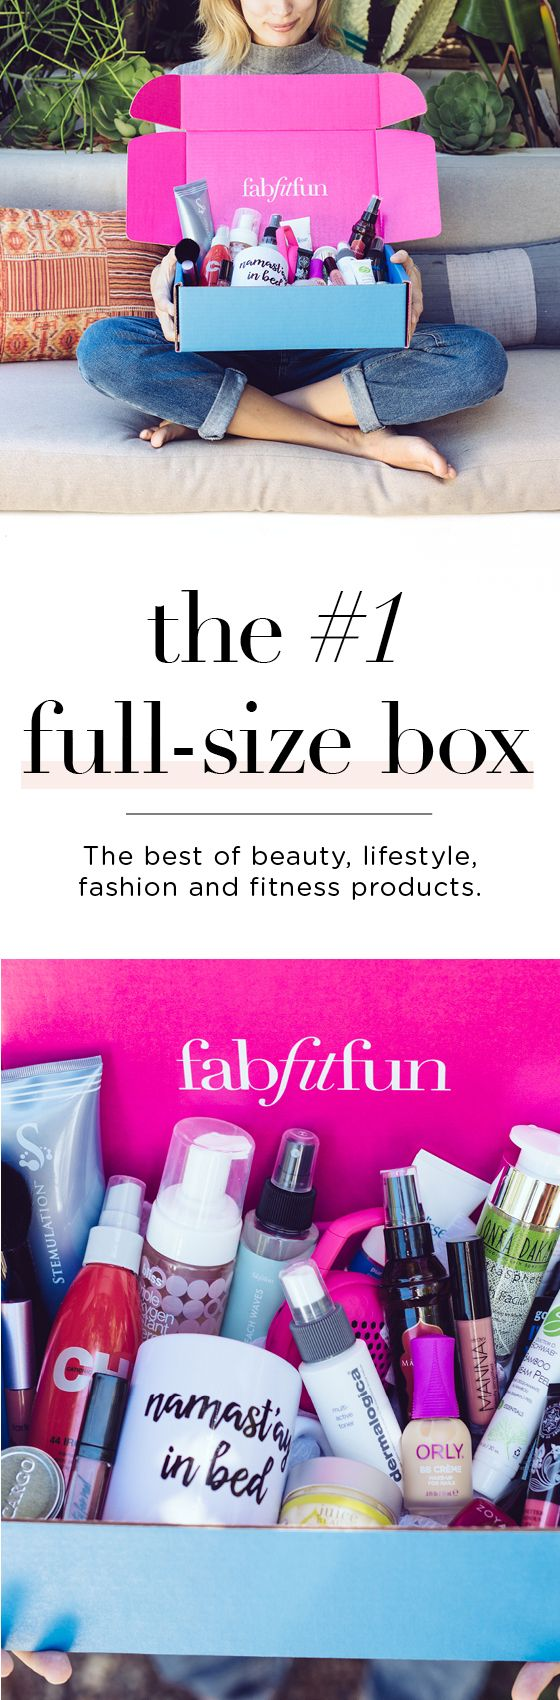 Have you tried the FabFitFun box? It's like a big surprise gift delivered to your doorstep each season. The box is stacked with premium, full-size beauty, fashion, and fitness products. Use code LEAVES to get your 1st box for $39.99 and see why we're the #1 full-size box!